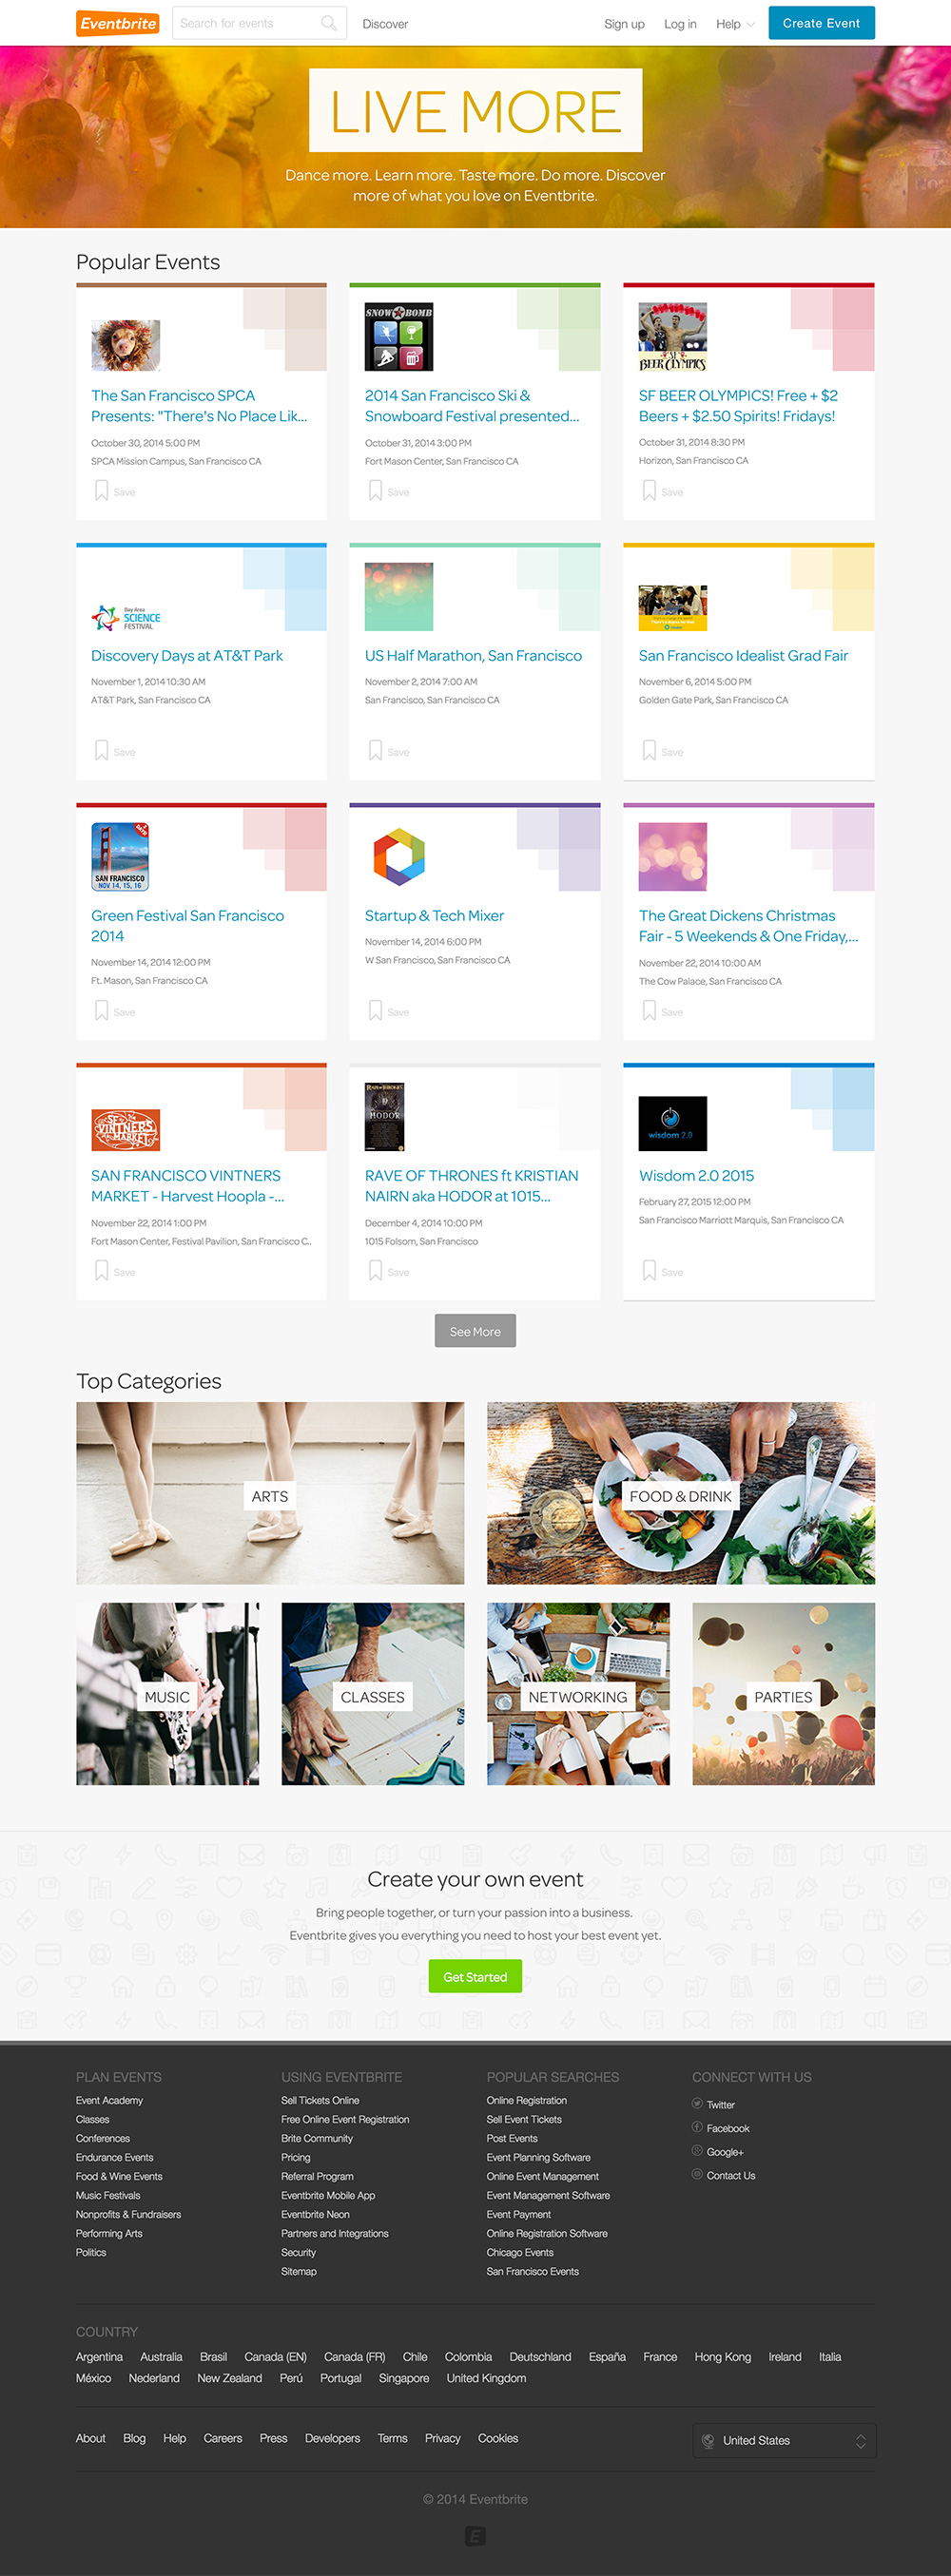 homepage eventbrite 2014